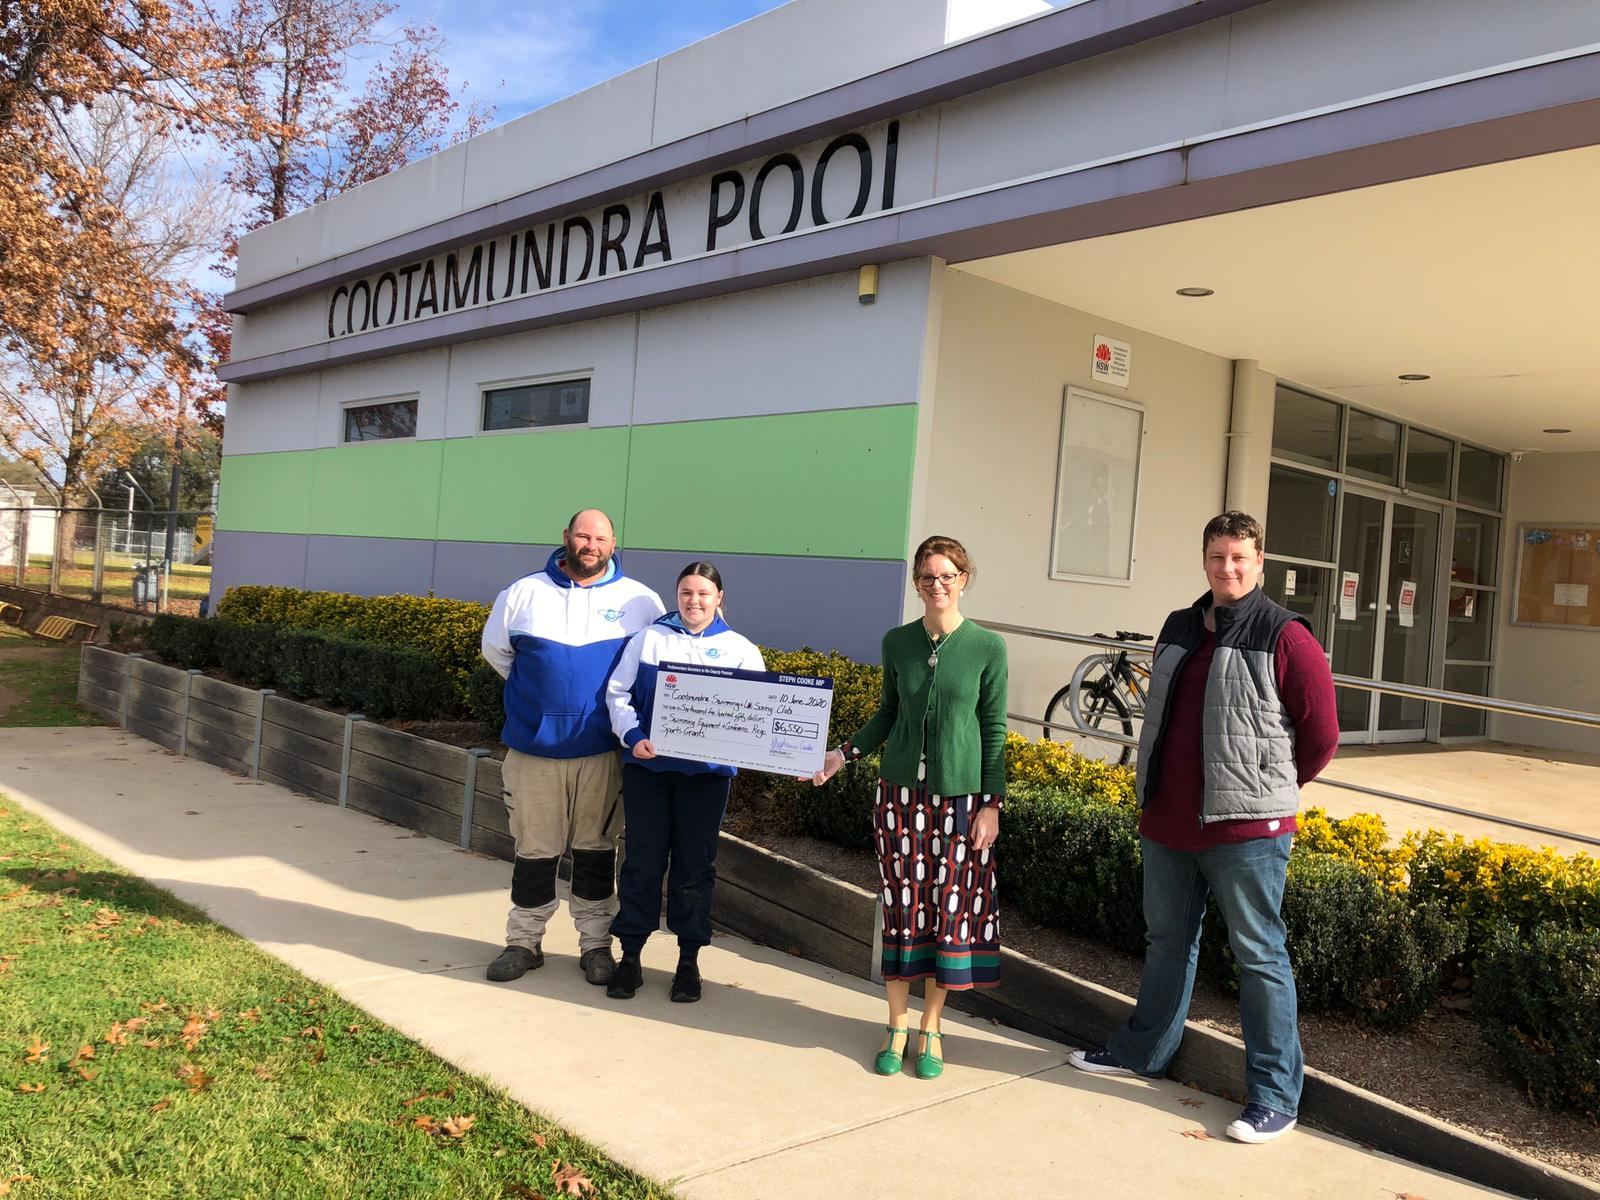 Adam Gammon, Abbey Gammon, Steph Cooke MP and Gareth Jones stand out the front of the Cootamundra Pool. They hold a large cheque between them and are standing 1.5 metres from each other.